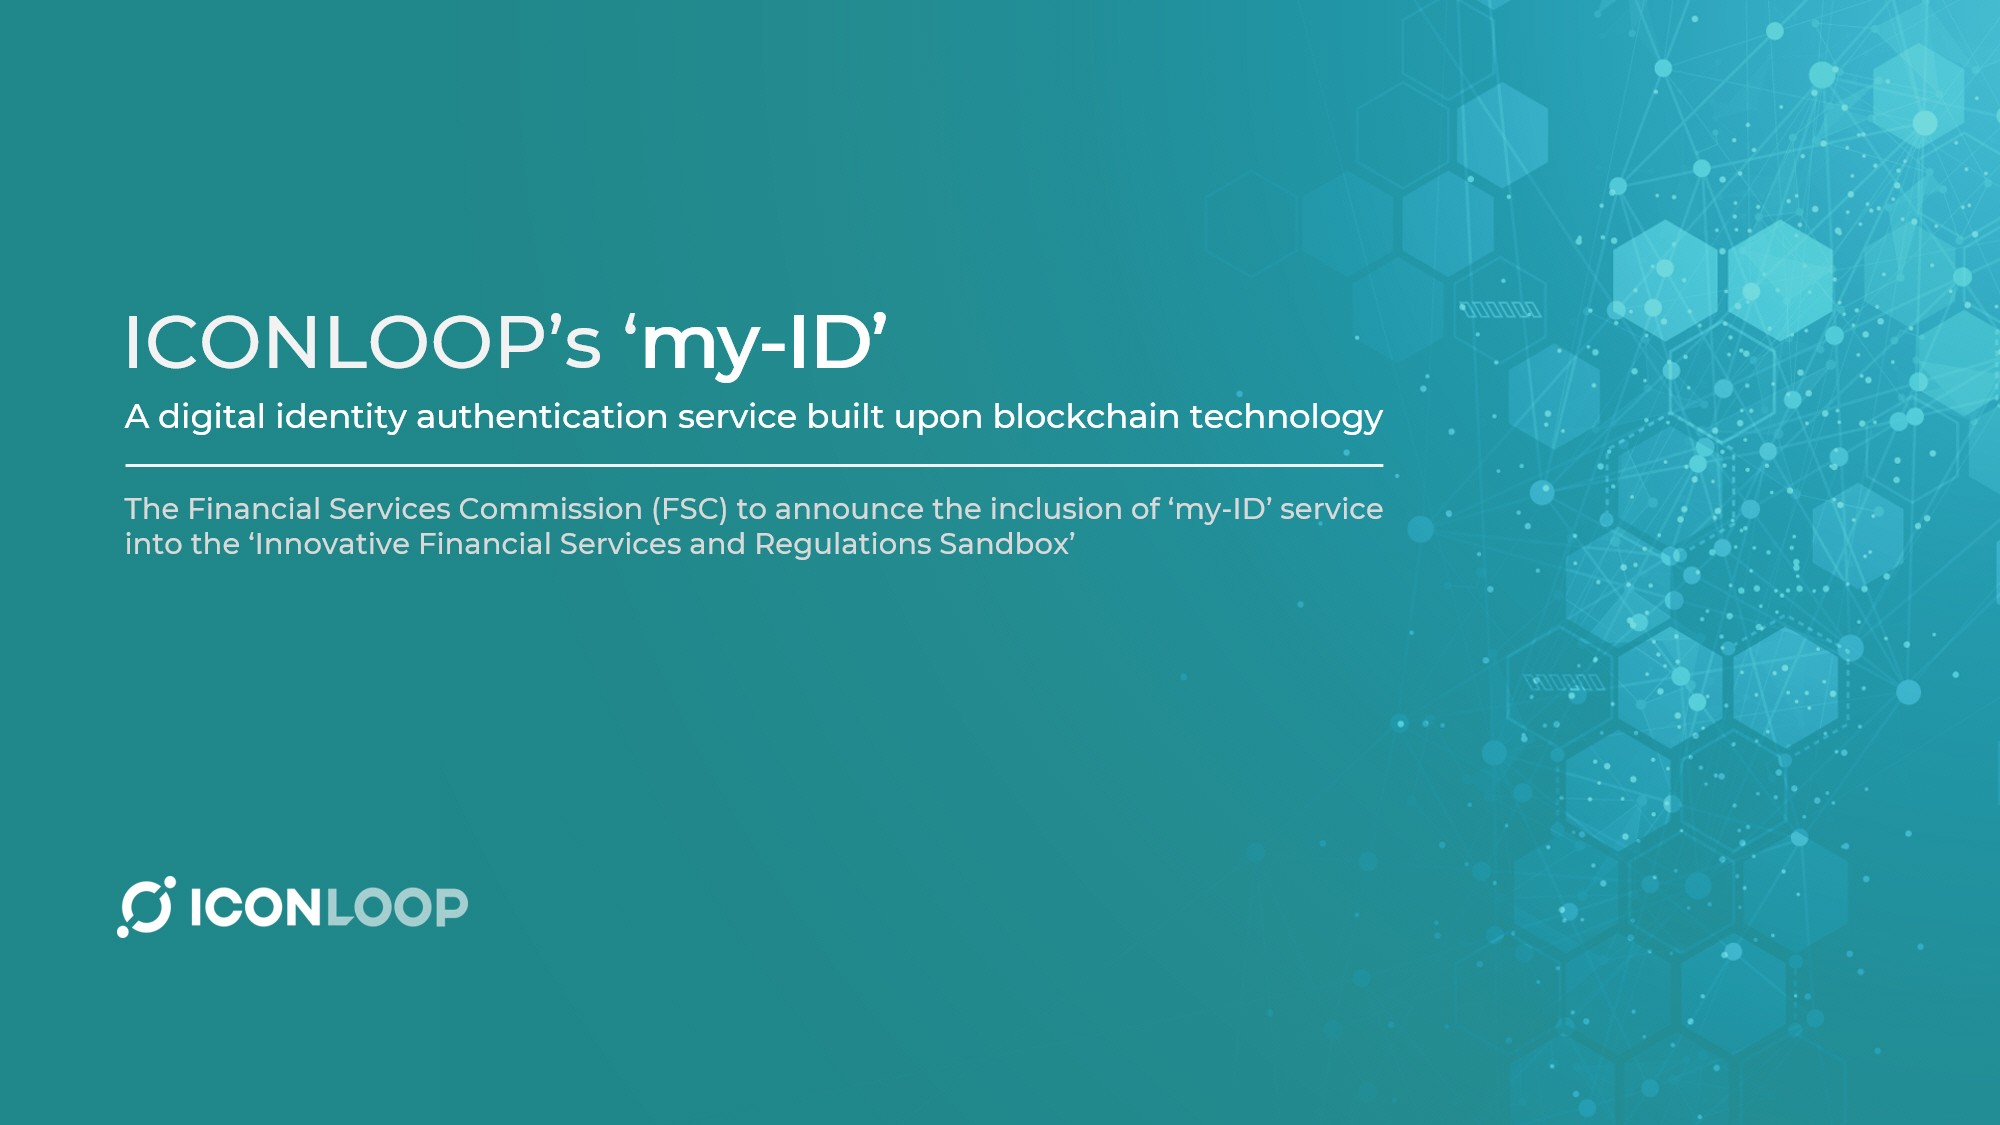 korea fsc approves iconloop s blockchain based digital identity authentication service codenamed my id into its fintech sandbox by iconloop hello icon world medium digital identity authentication service